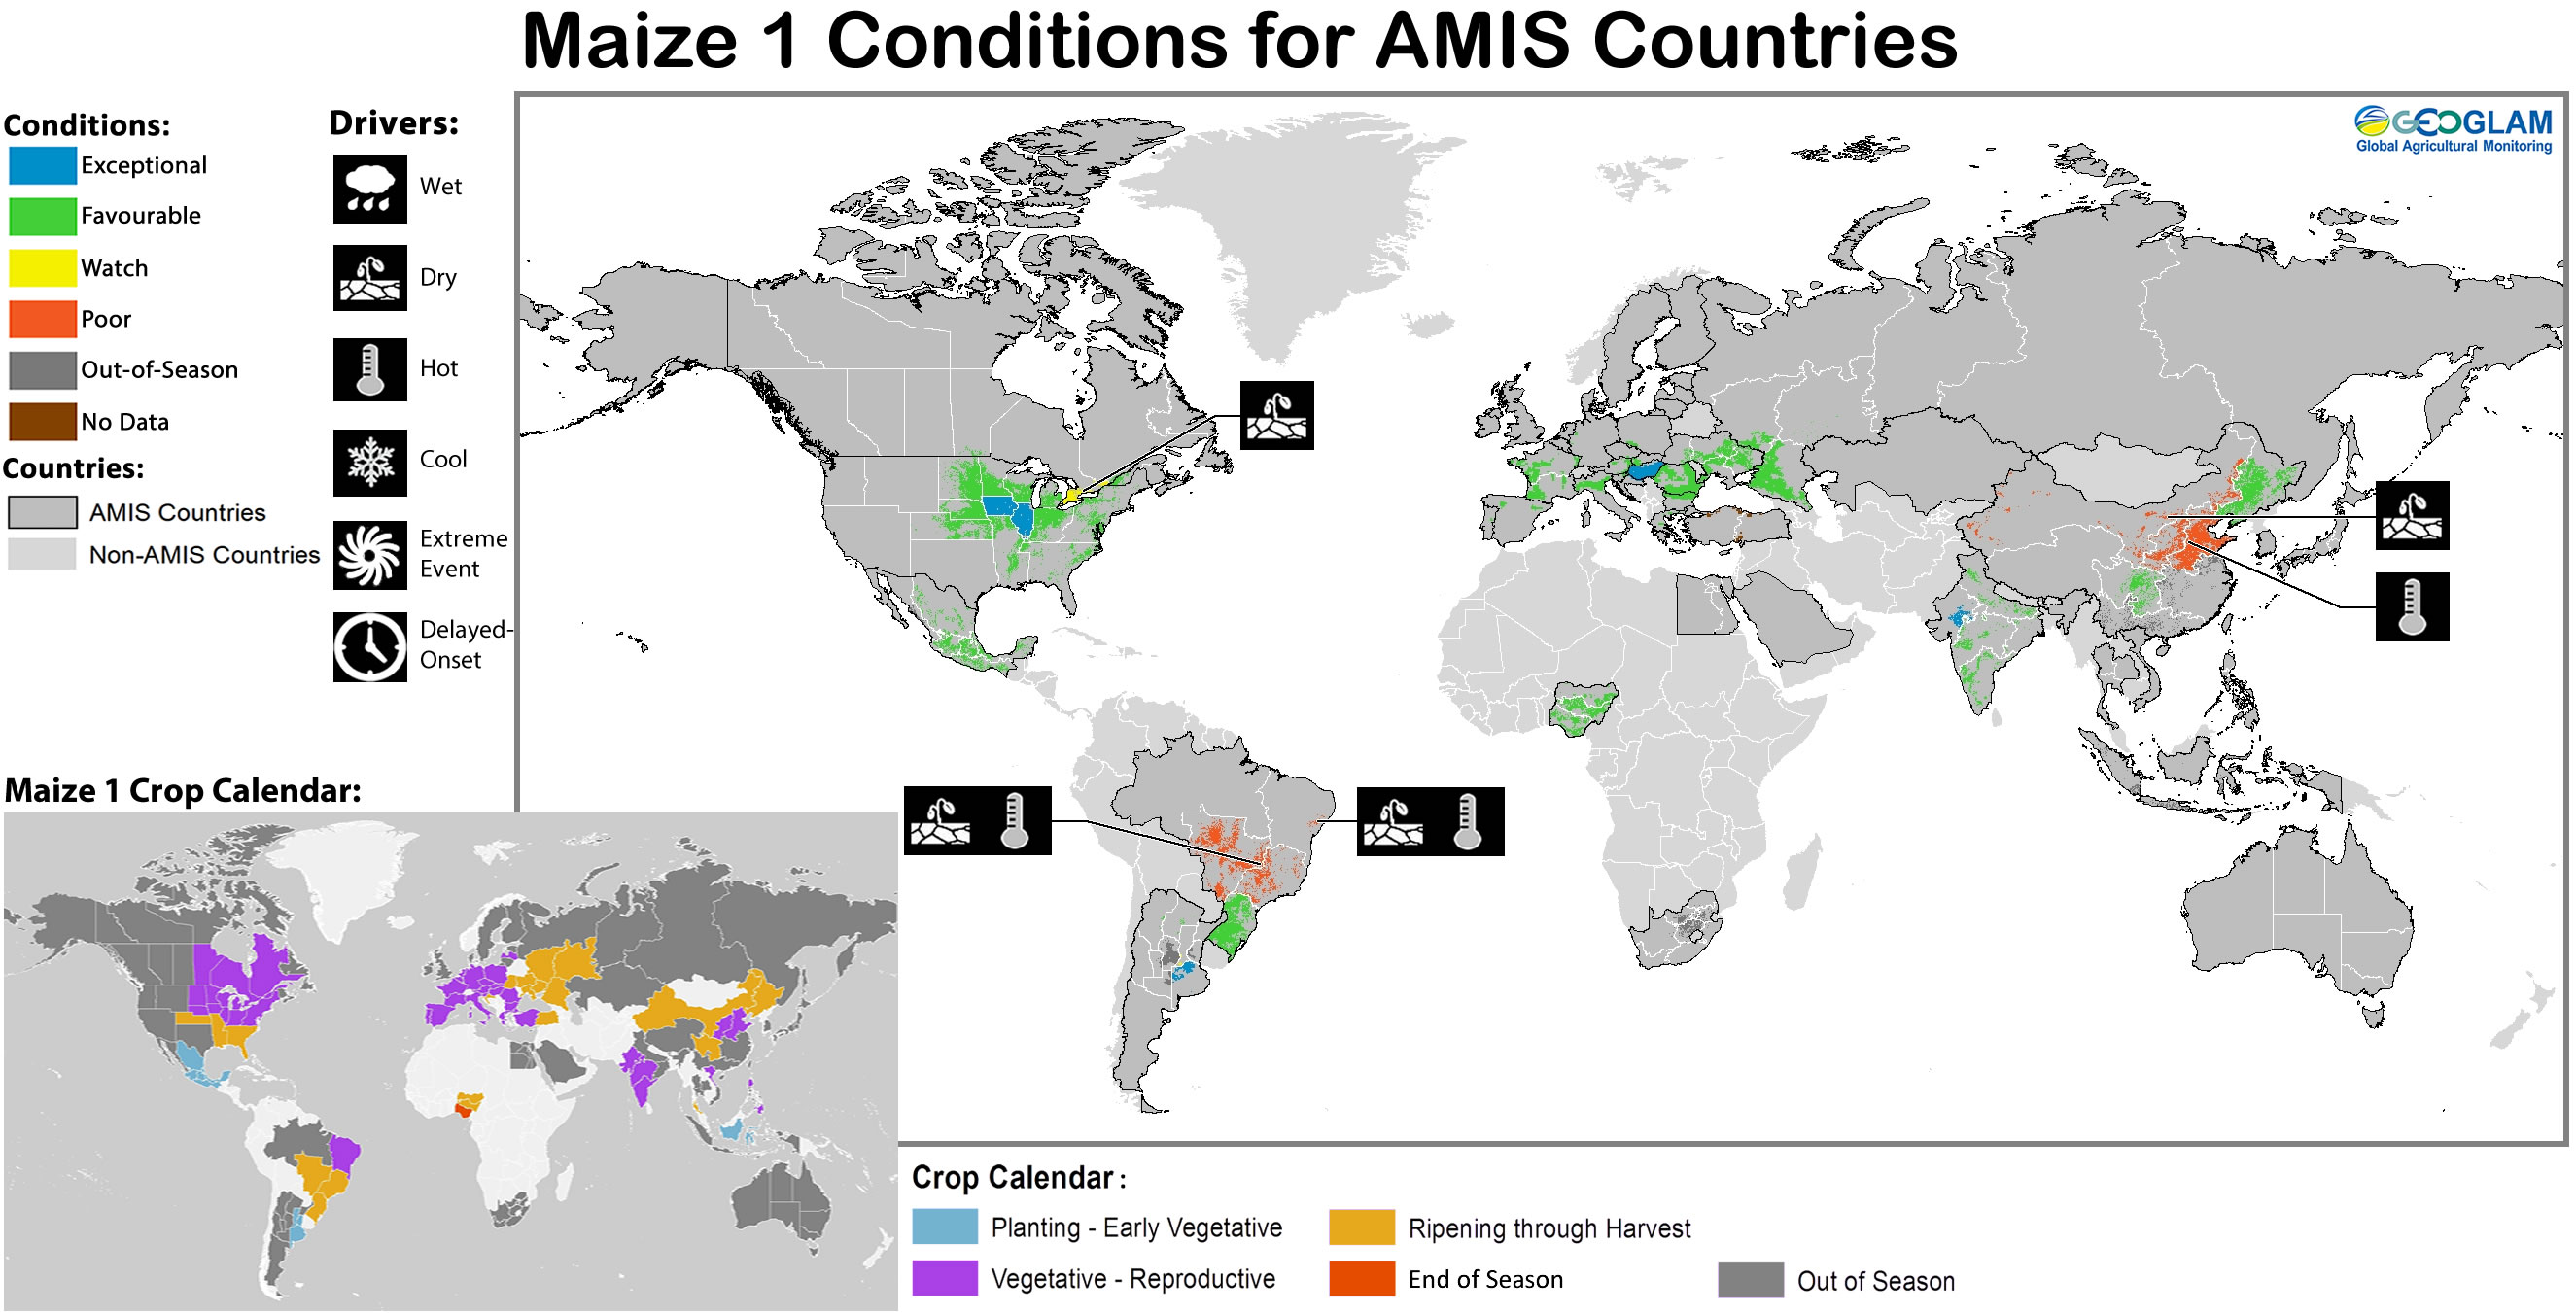 Maize 1 crop conditions over main growing areas are based upon a combination of national and regional crop analyst inputs along with earth observation data. Condition information is based upon information as of August 28th 2016. Where crops are in less than favourable conditions the climatic drivers responsible for those conditions are displayed.  The crop calendar is provided as a point of reference to provide information on what part of the life cycle the crops are currently in for each area.